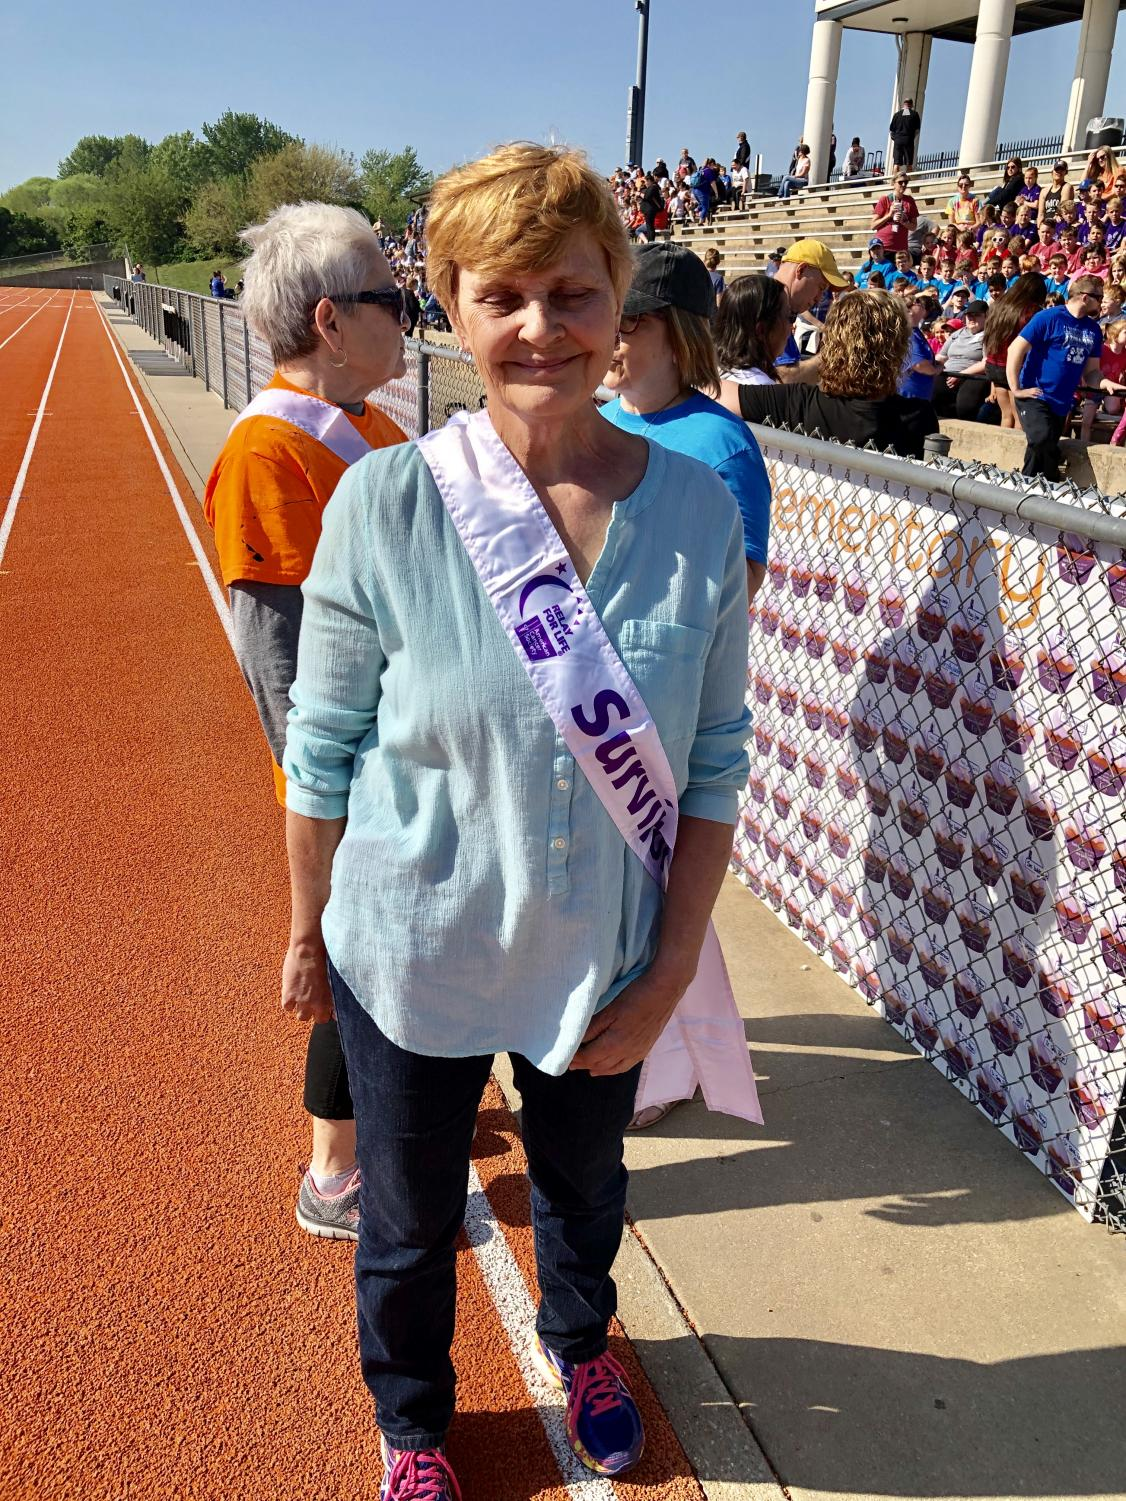 Former Robinson and Lincoln physical education teacher Tricia Lehr stands in the sun at the 2019 Relay Recess. Before Relay Recess started in Augusta, Lehr taught physical education at the time she was diagnosed with cancer. Teachers like Garfield Elementary teacher Diane Rhoten started Relay Recess to support Lehr and other cancer patients.